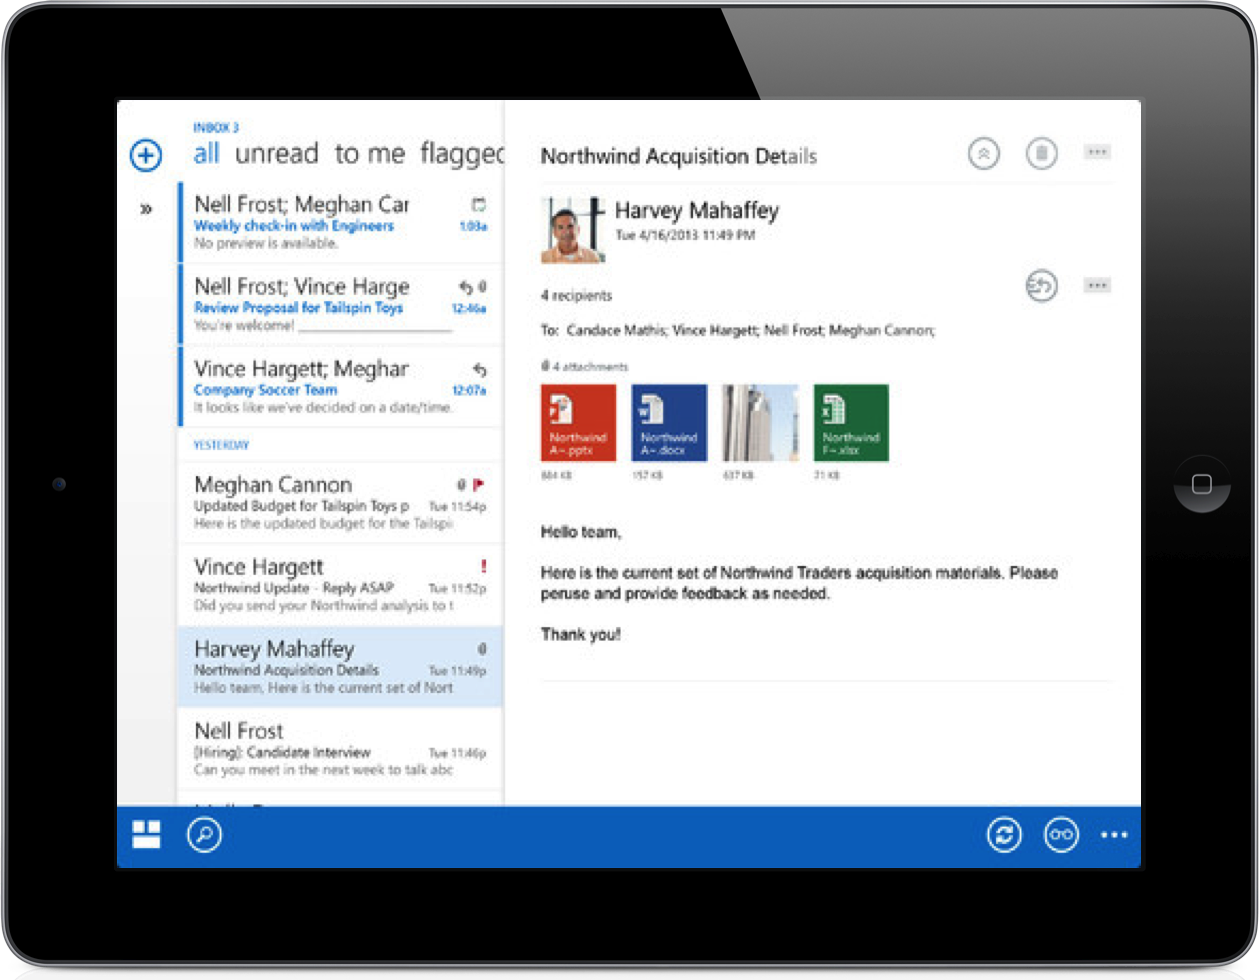 Microsoft Releases Native iPhone and iPad App